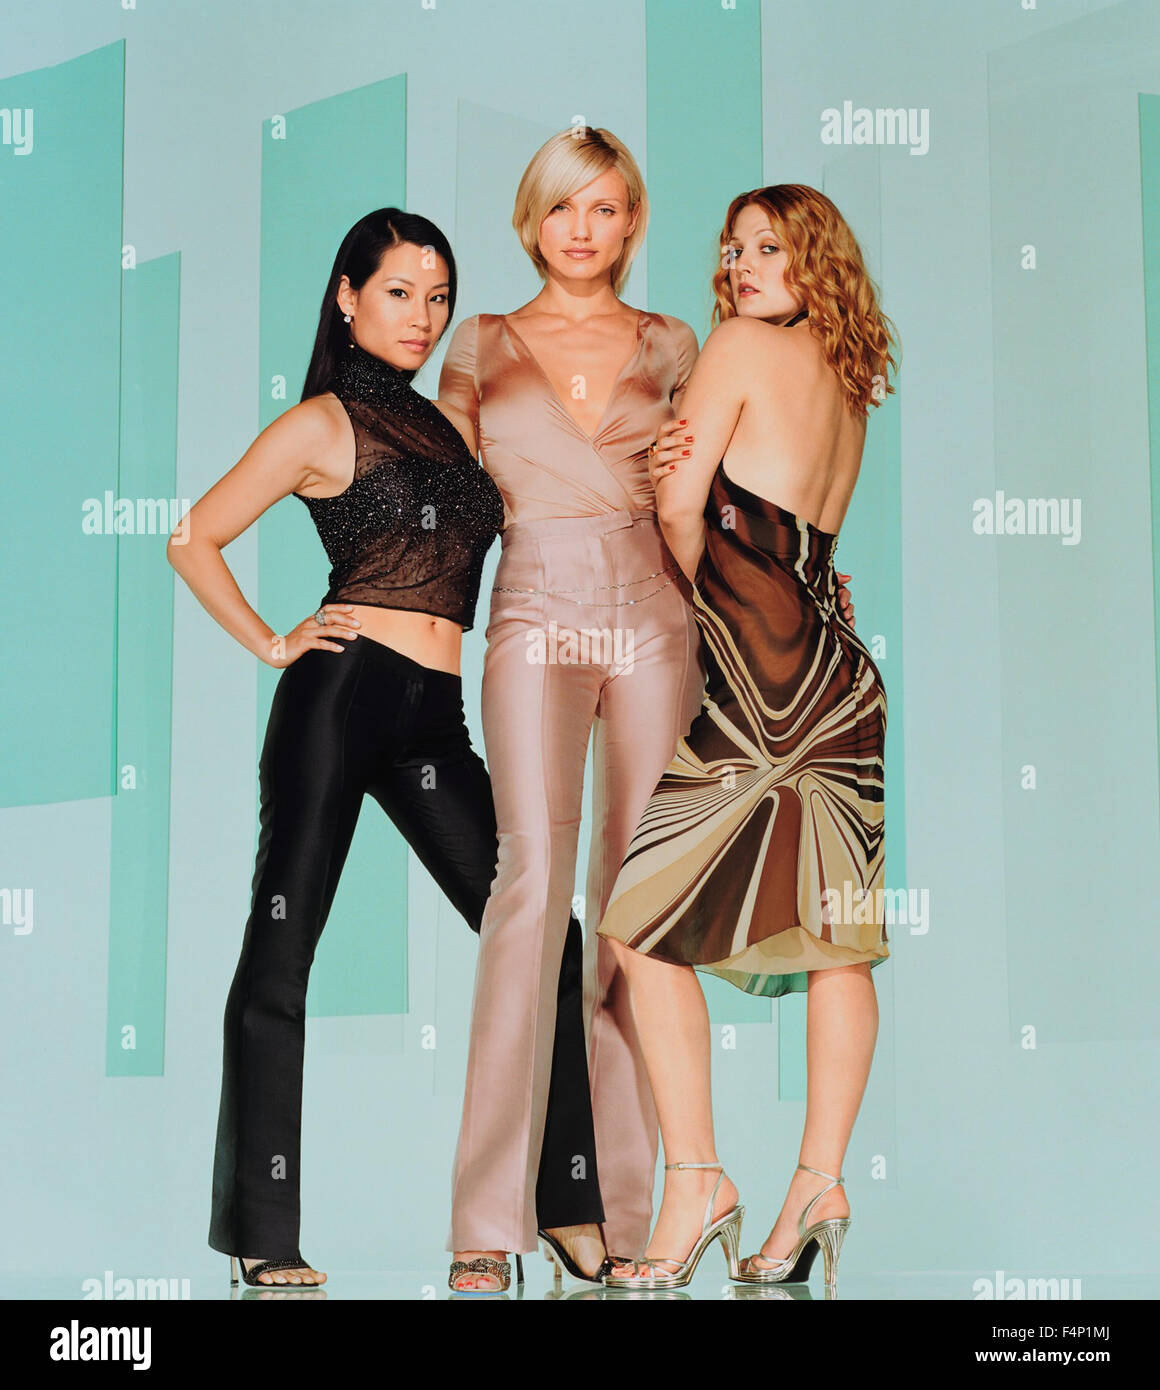 Drew Barrymore, Lucy Liu and Cameron Diaz   Charlie's angels: Les anges se dechaînent (2003)   USA  Director : McG Stock Photo